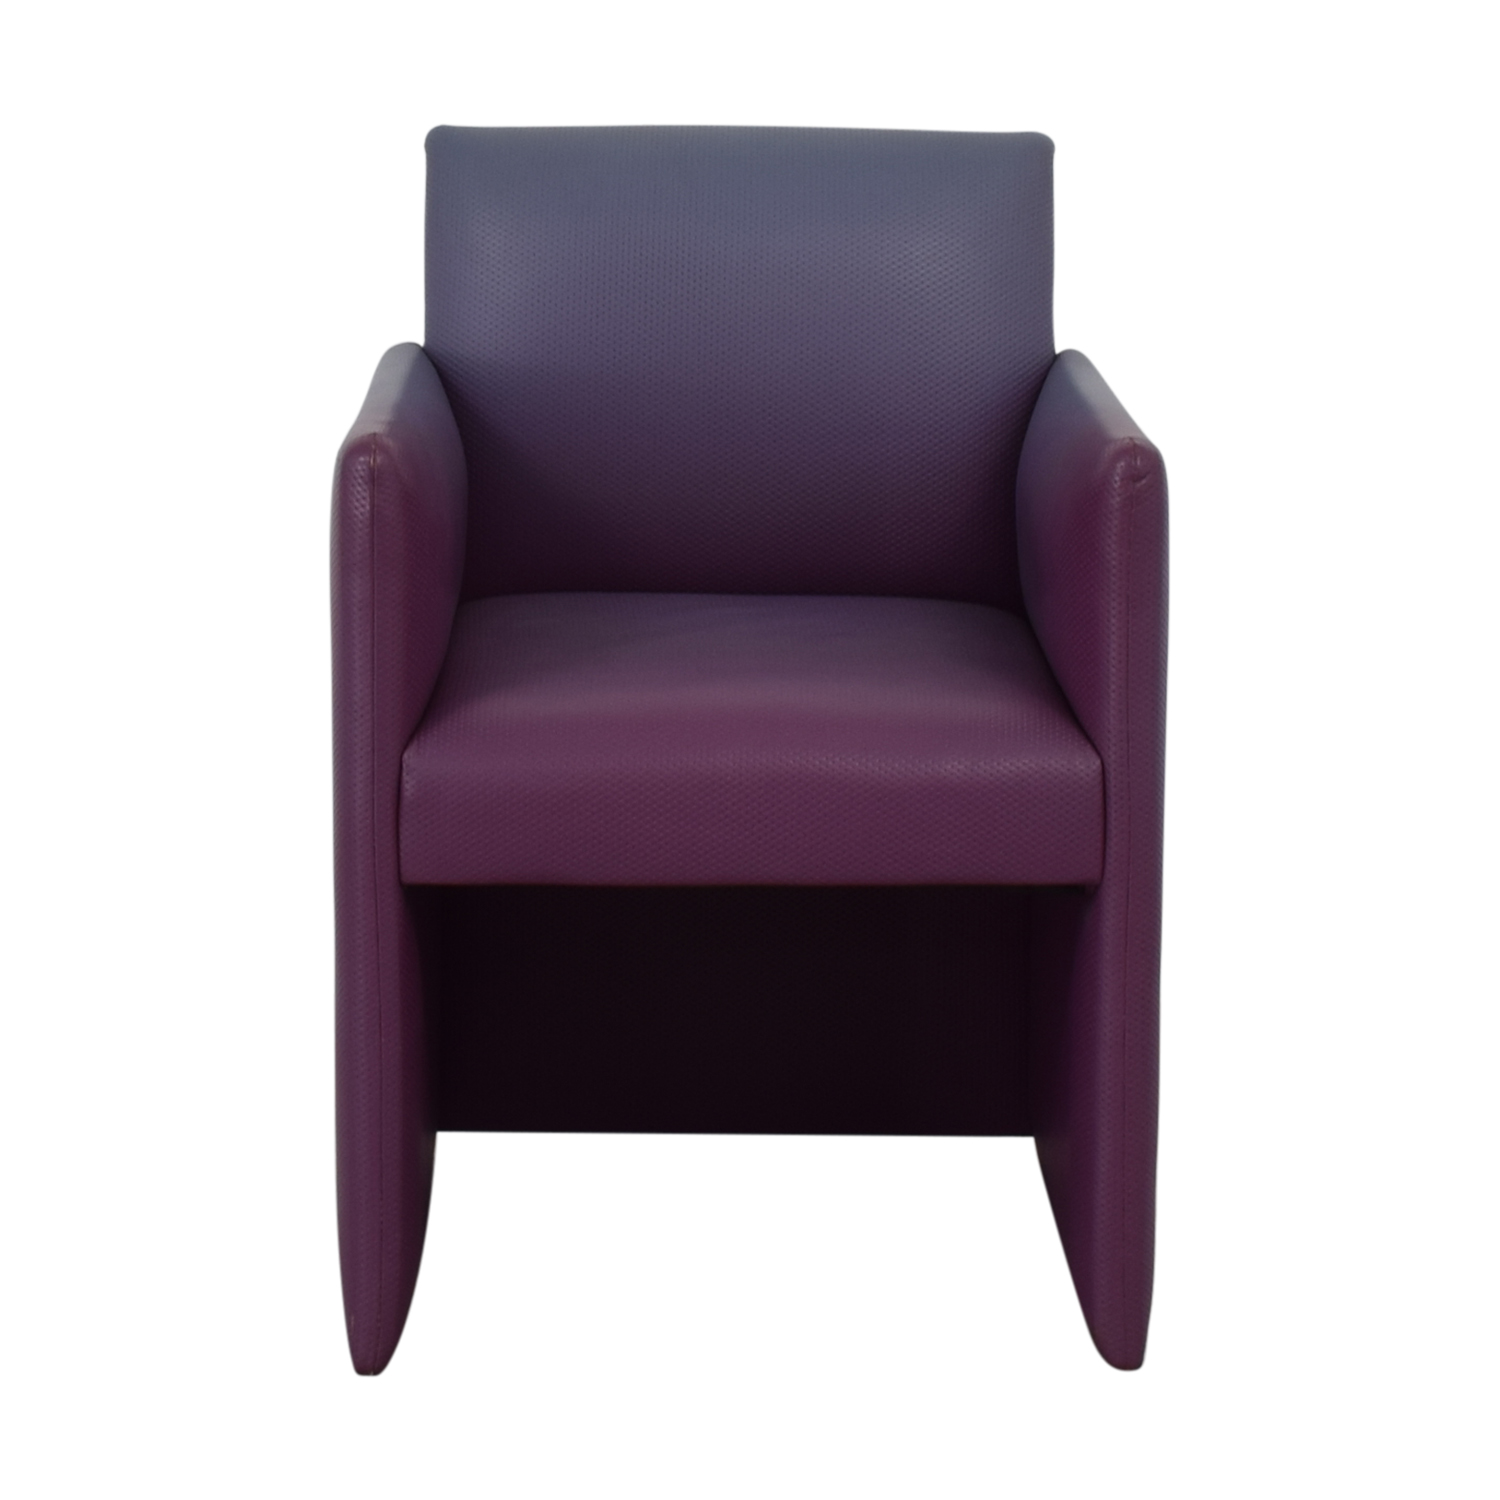 Furniture Masters Furniture Masters Purple Accent Chair dimensions